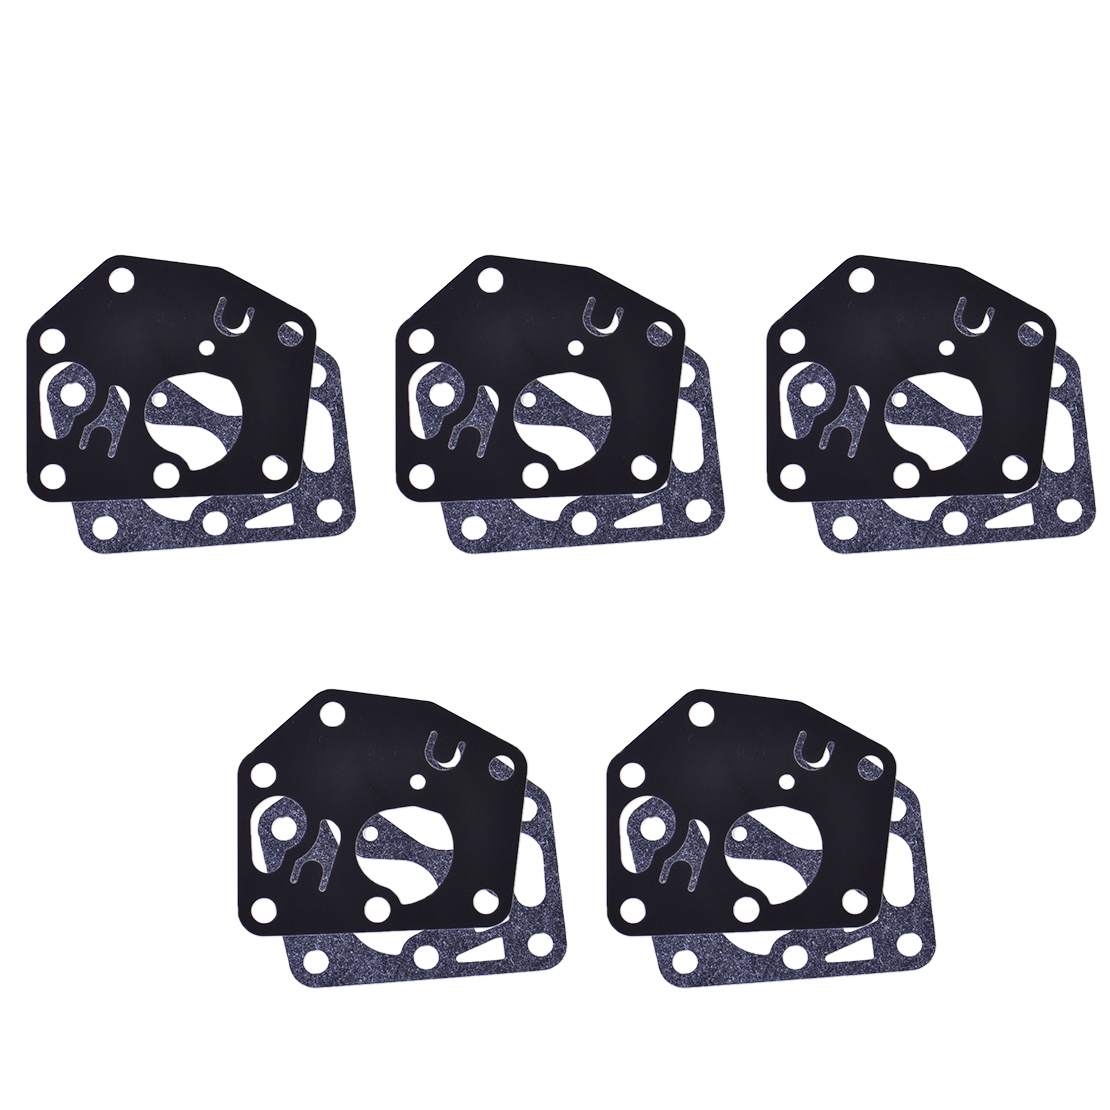 LETAOSK New Diaphragm Gasket Kit Fit for <font><b>Briggs</b></font> & Stratton 495770 <font><b>795083</b></font> 5083H 5083K Carburetor image